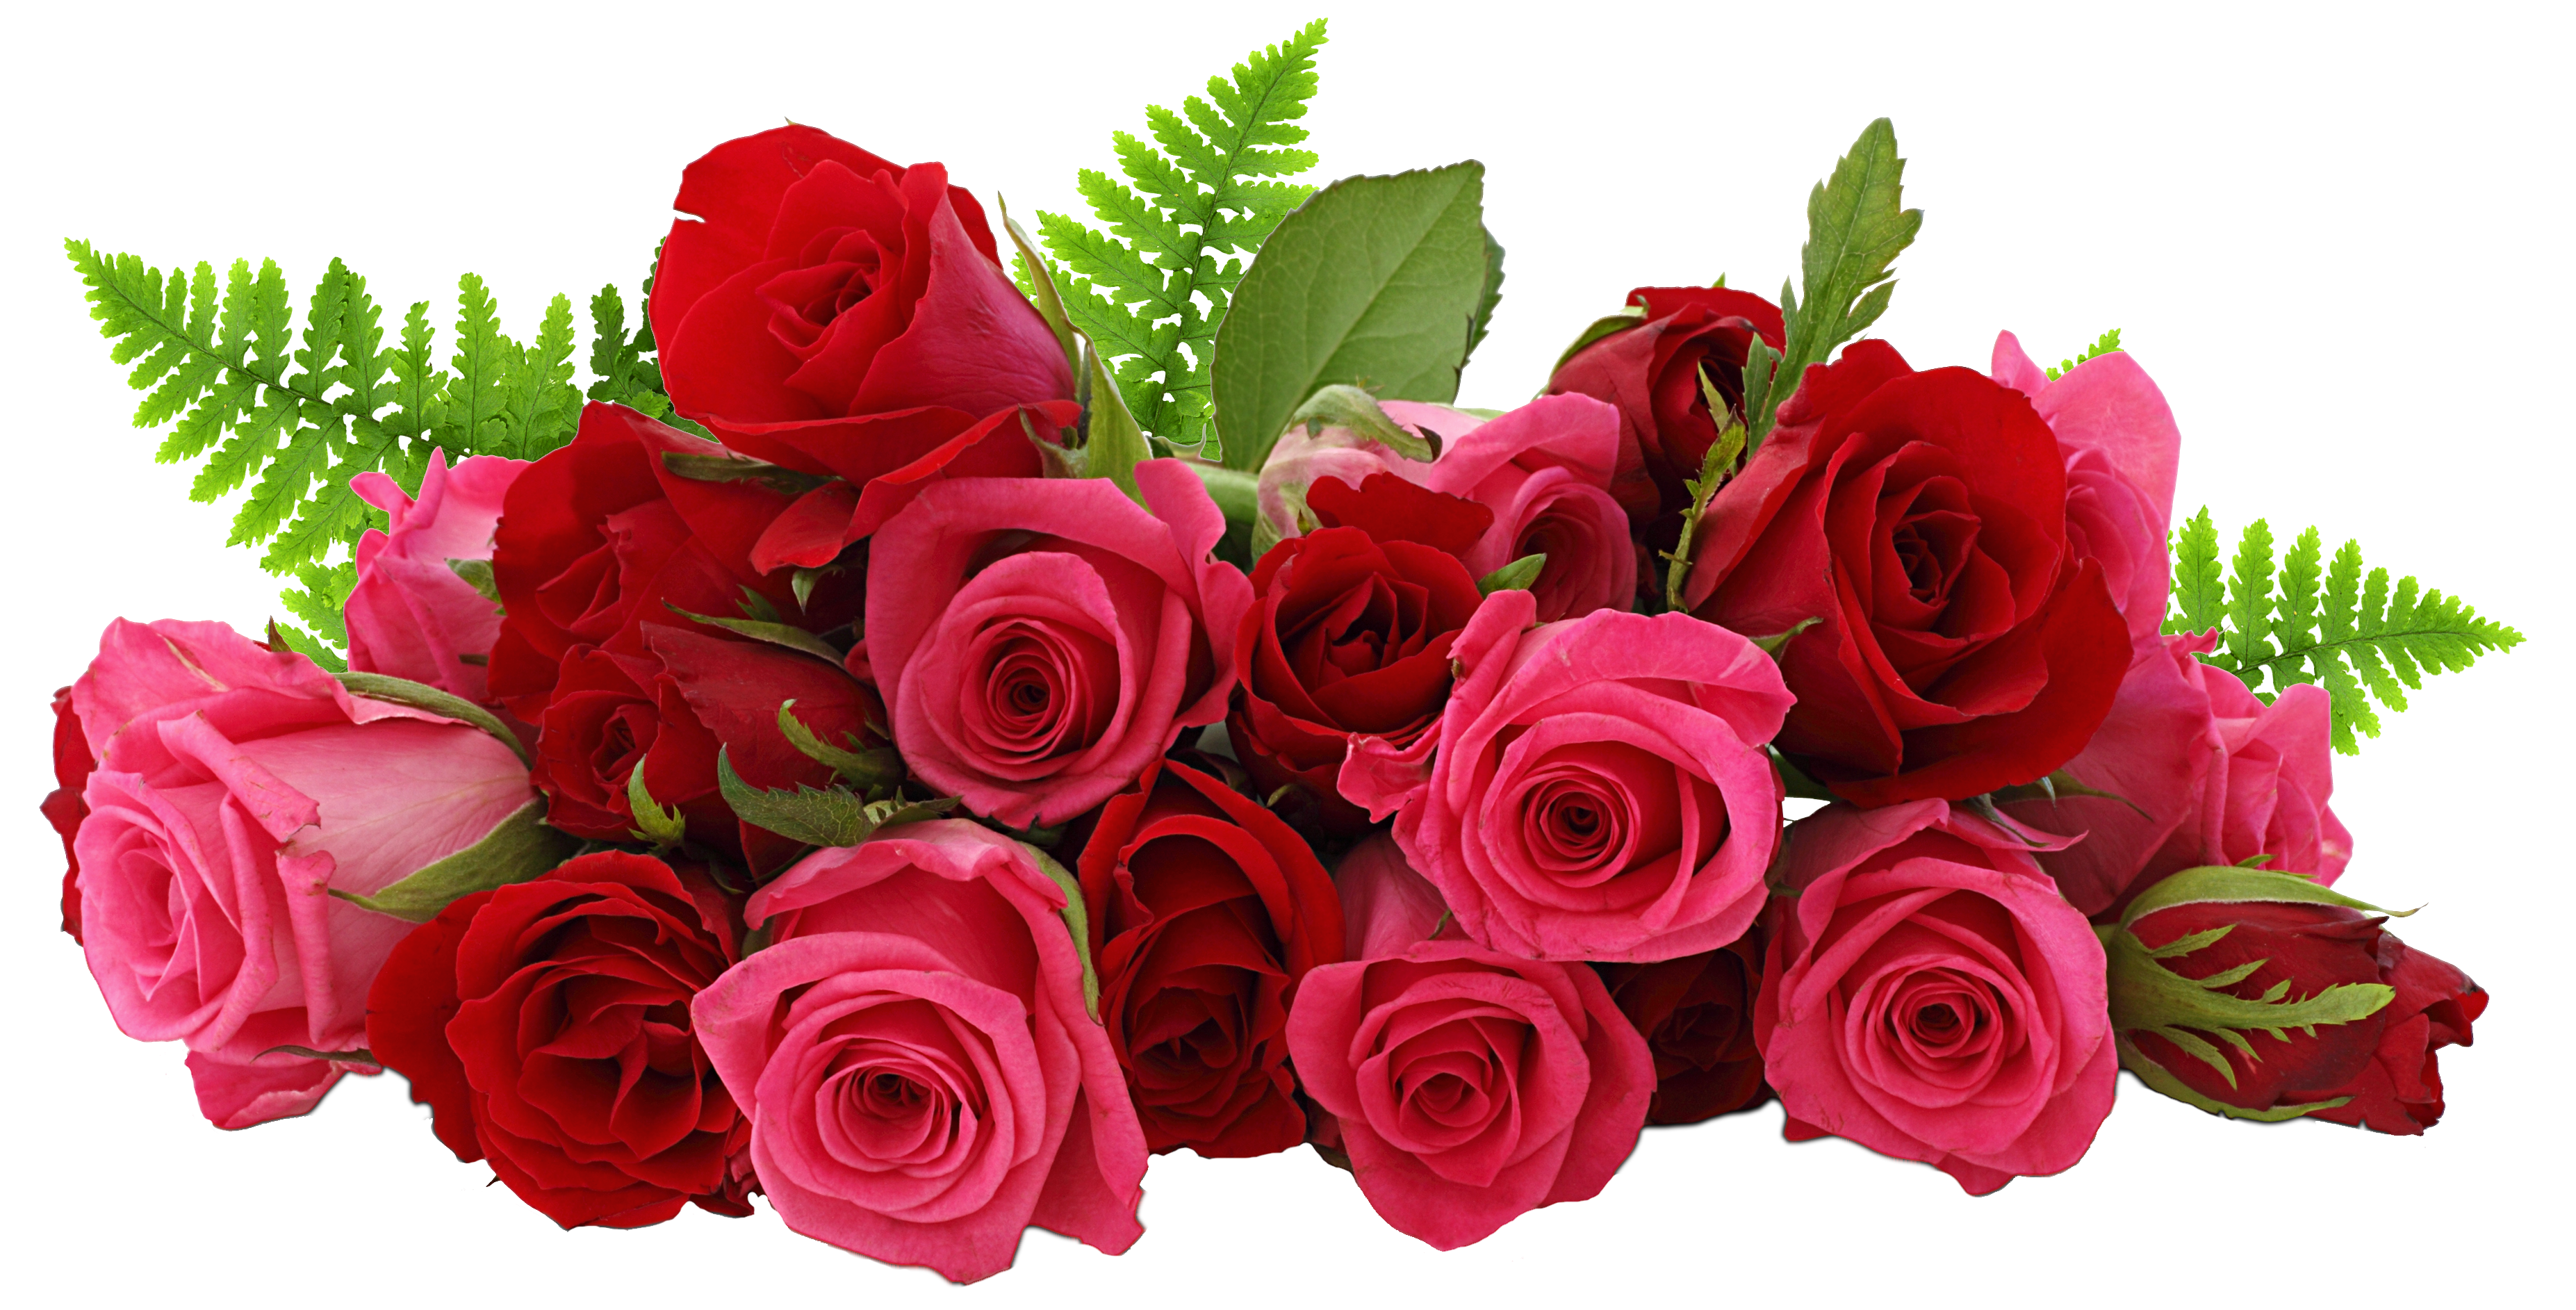 Rose crown clipart download Red and Pink Roses PNG Picture | Gallery Yopriceville - High ... download